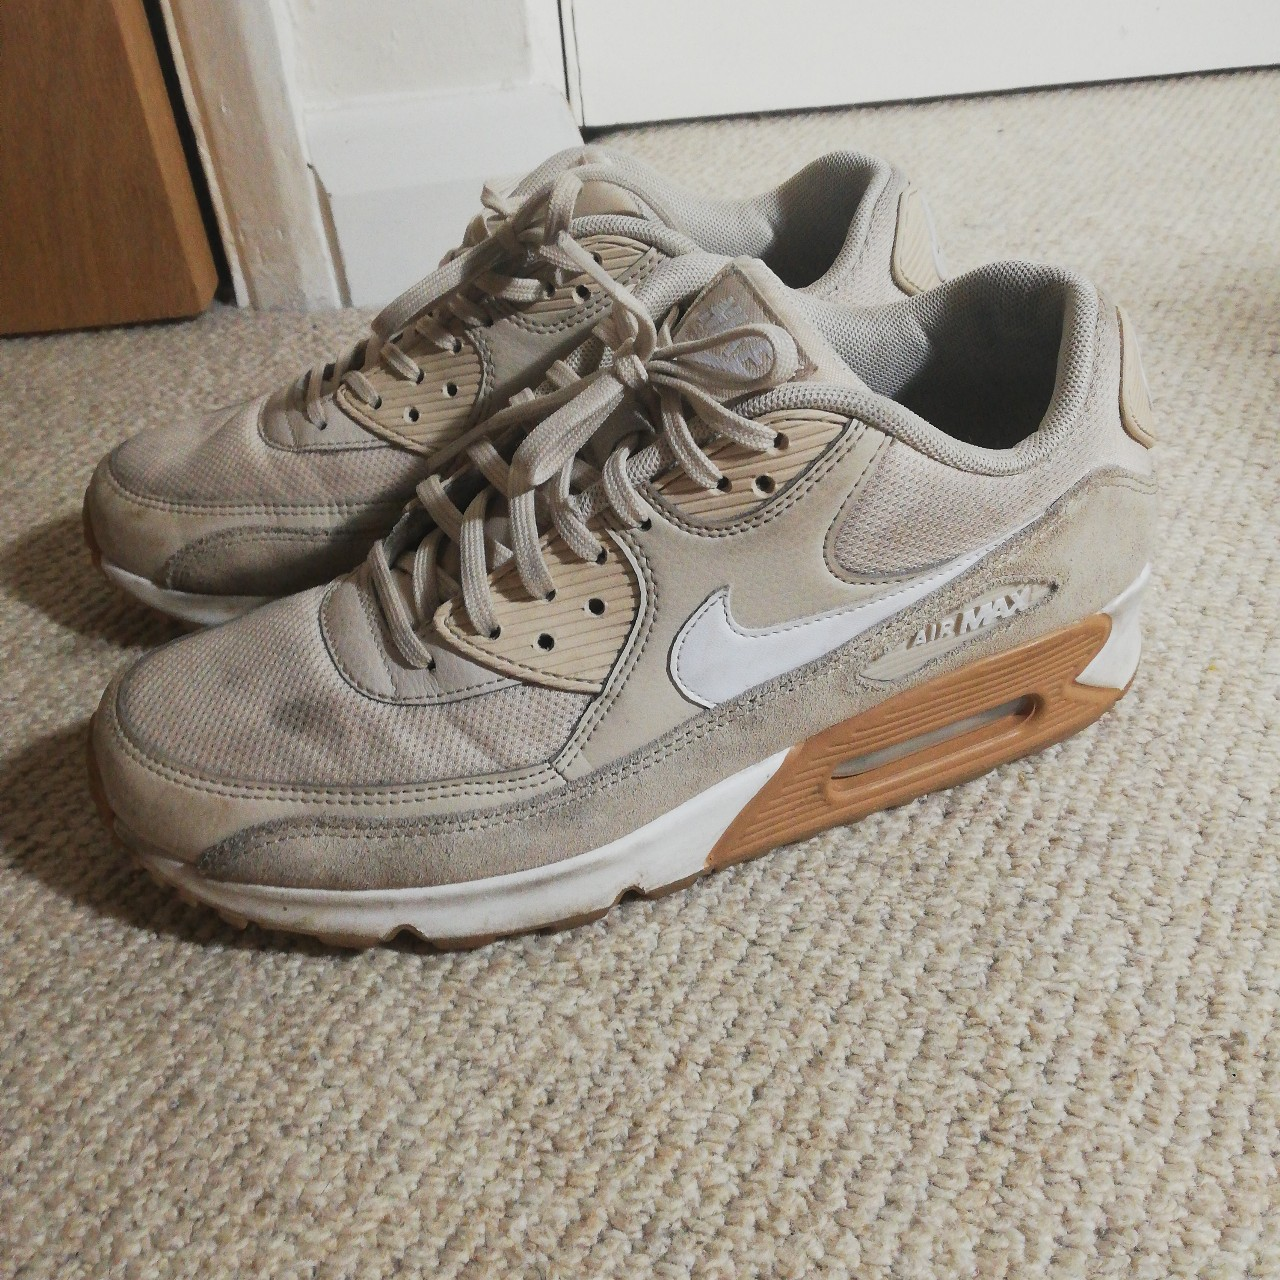 Nike air max 90 Suede leather grey tan white... - Depop